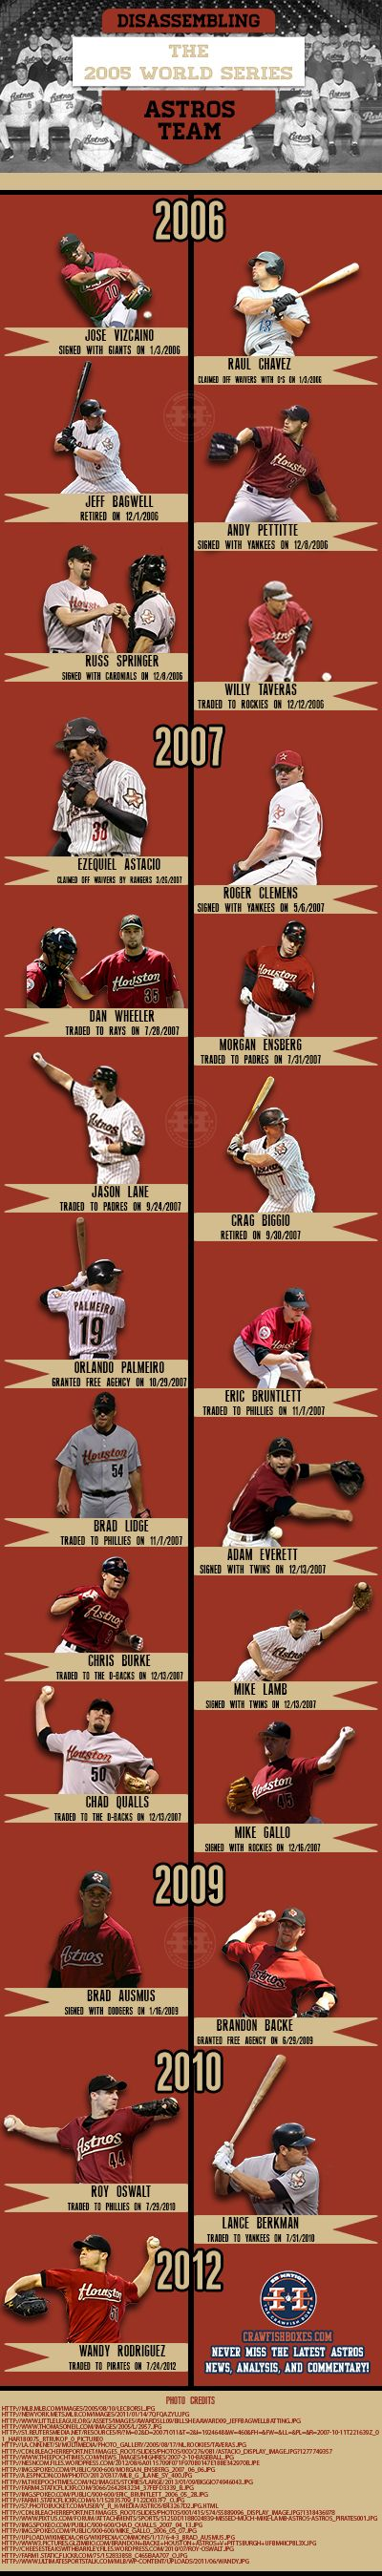 Dismantling the Astros 2005 World Series Team